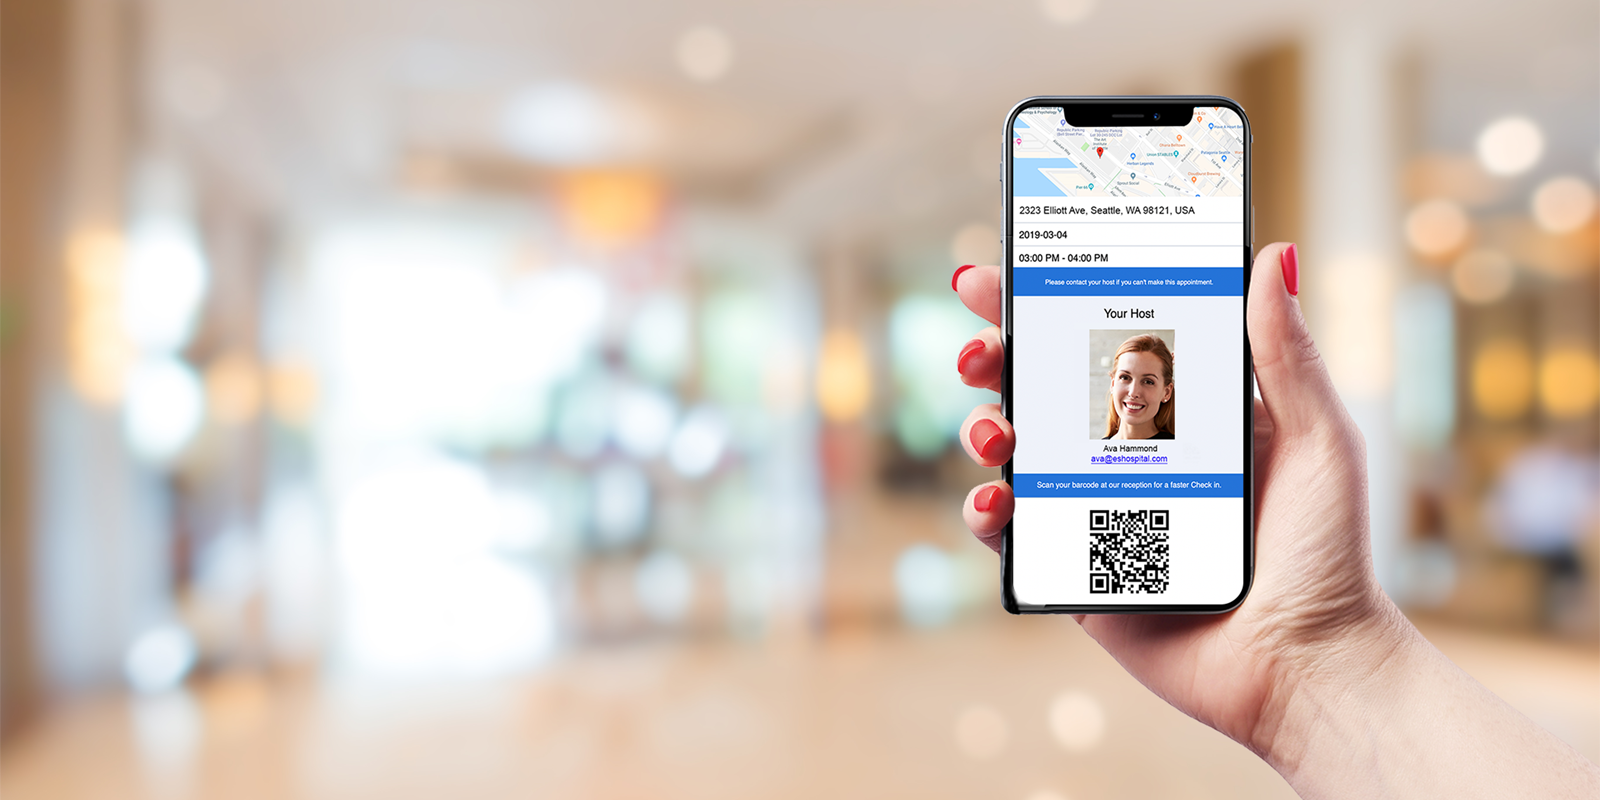 Pre-registered guests receive an email with location and visit details, along with a QR code they can easily scan upon arrival for a check-in time under 5 seconds.